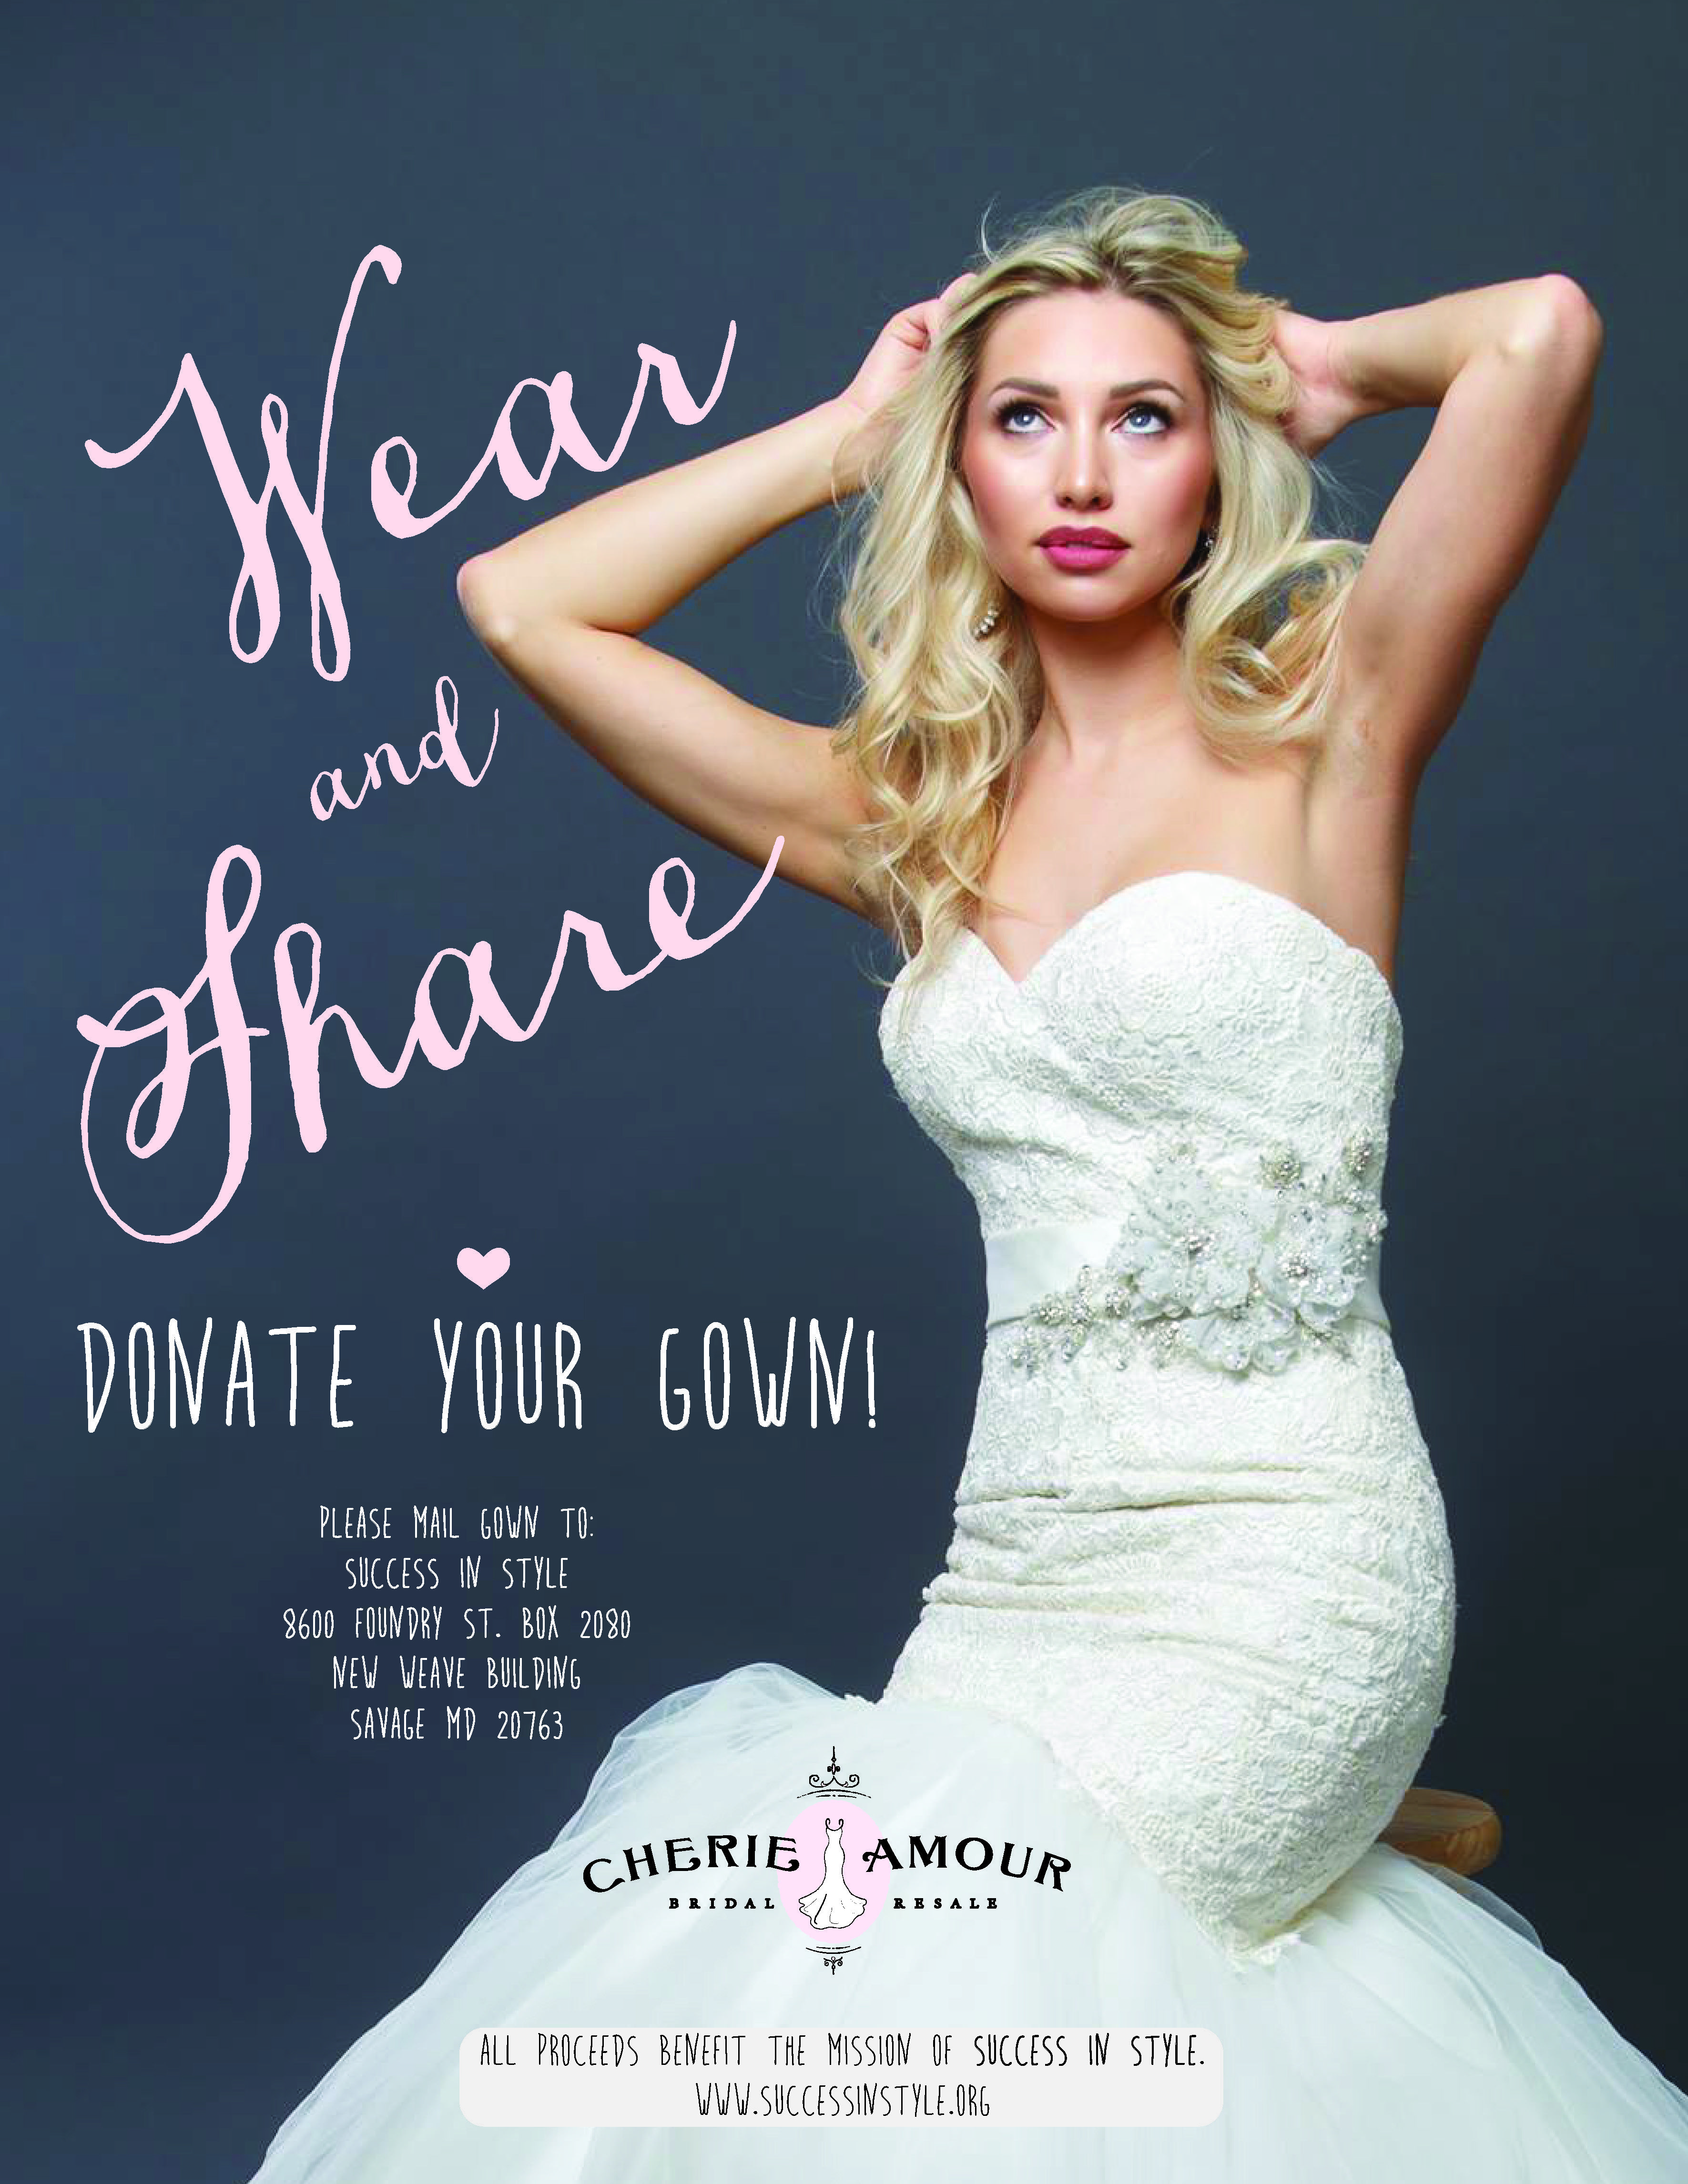 Amazing Donate your wedding dress Cherie Amour Bridal Resale donatethedress What to do with wedding dress